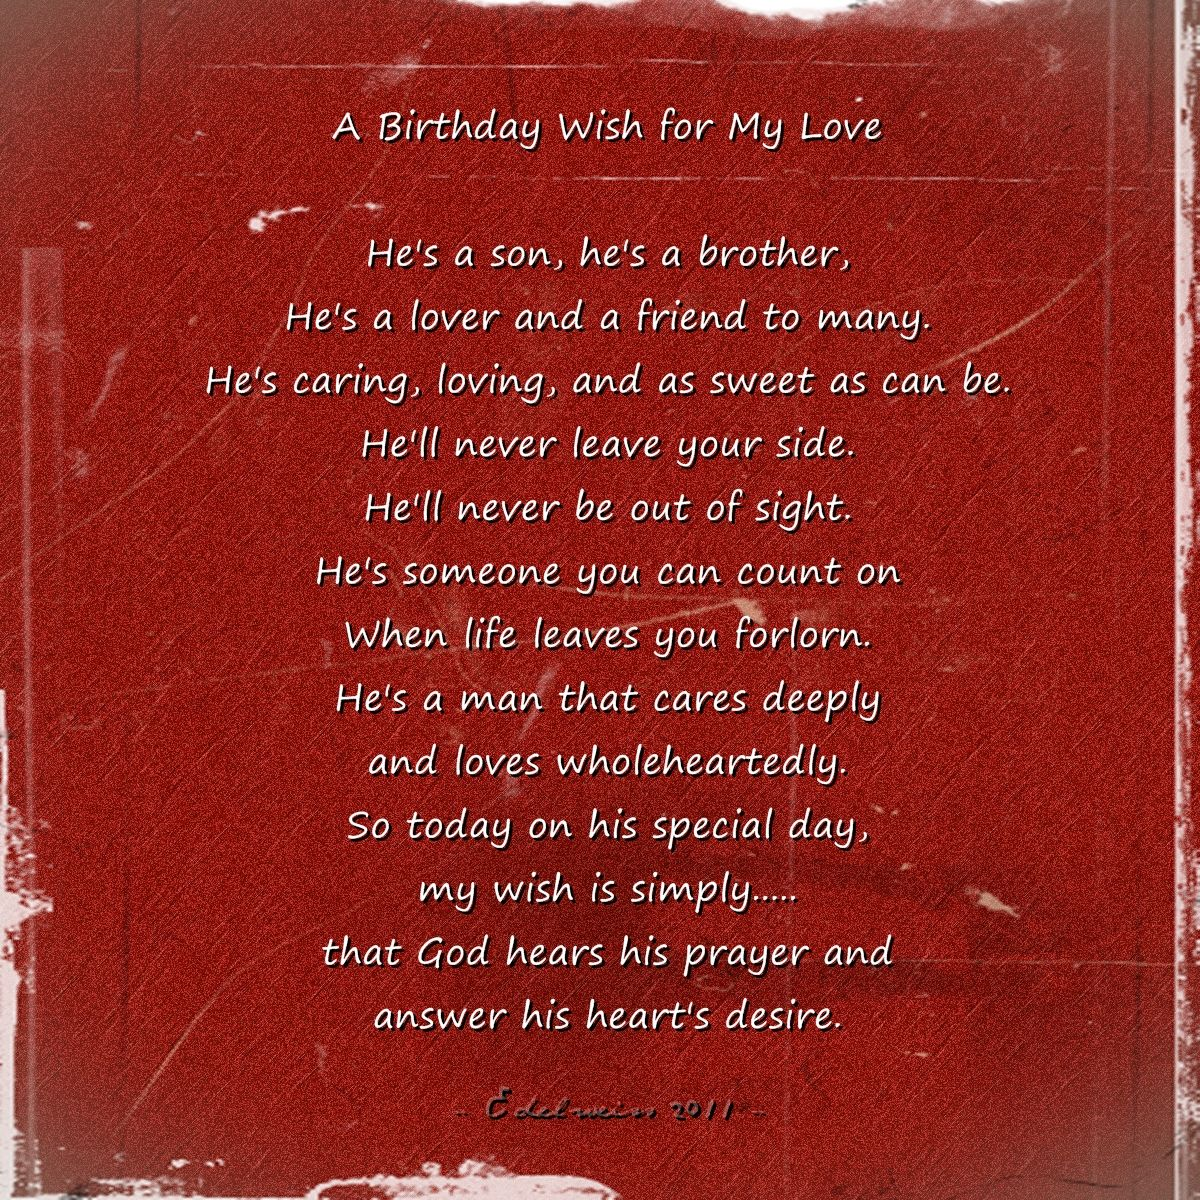 Love Quotes For Him: Happy Birthday My Love Quotes Poems